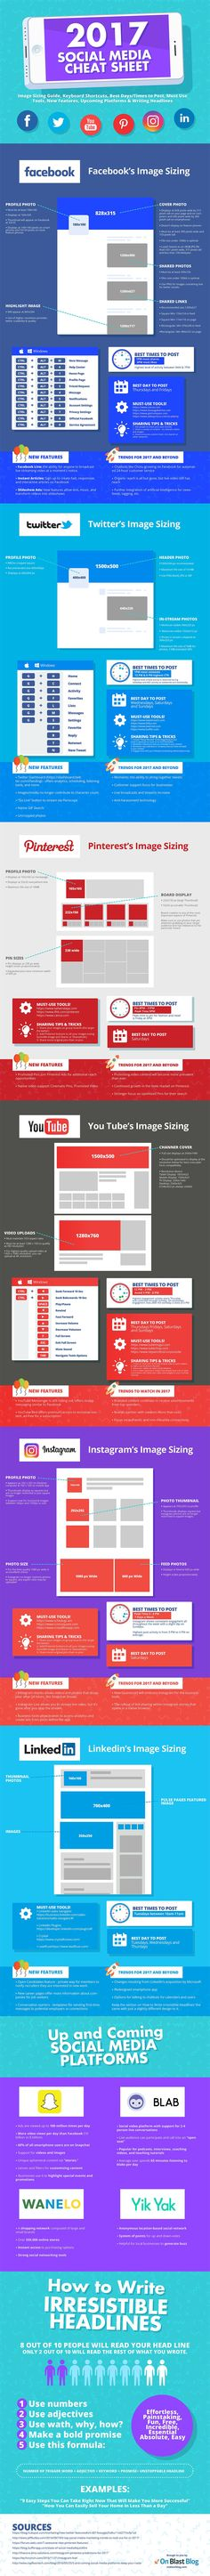 Infographic: Social